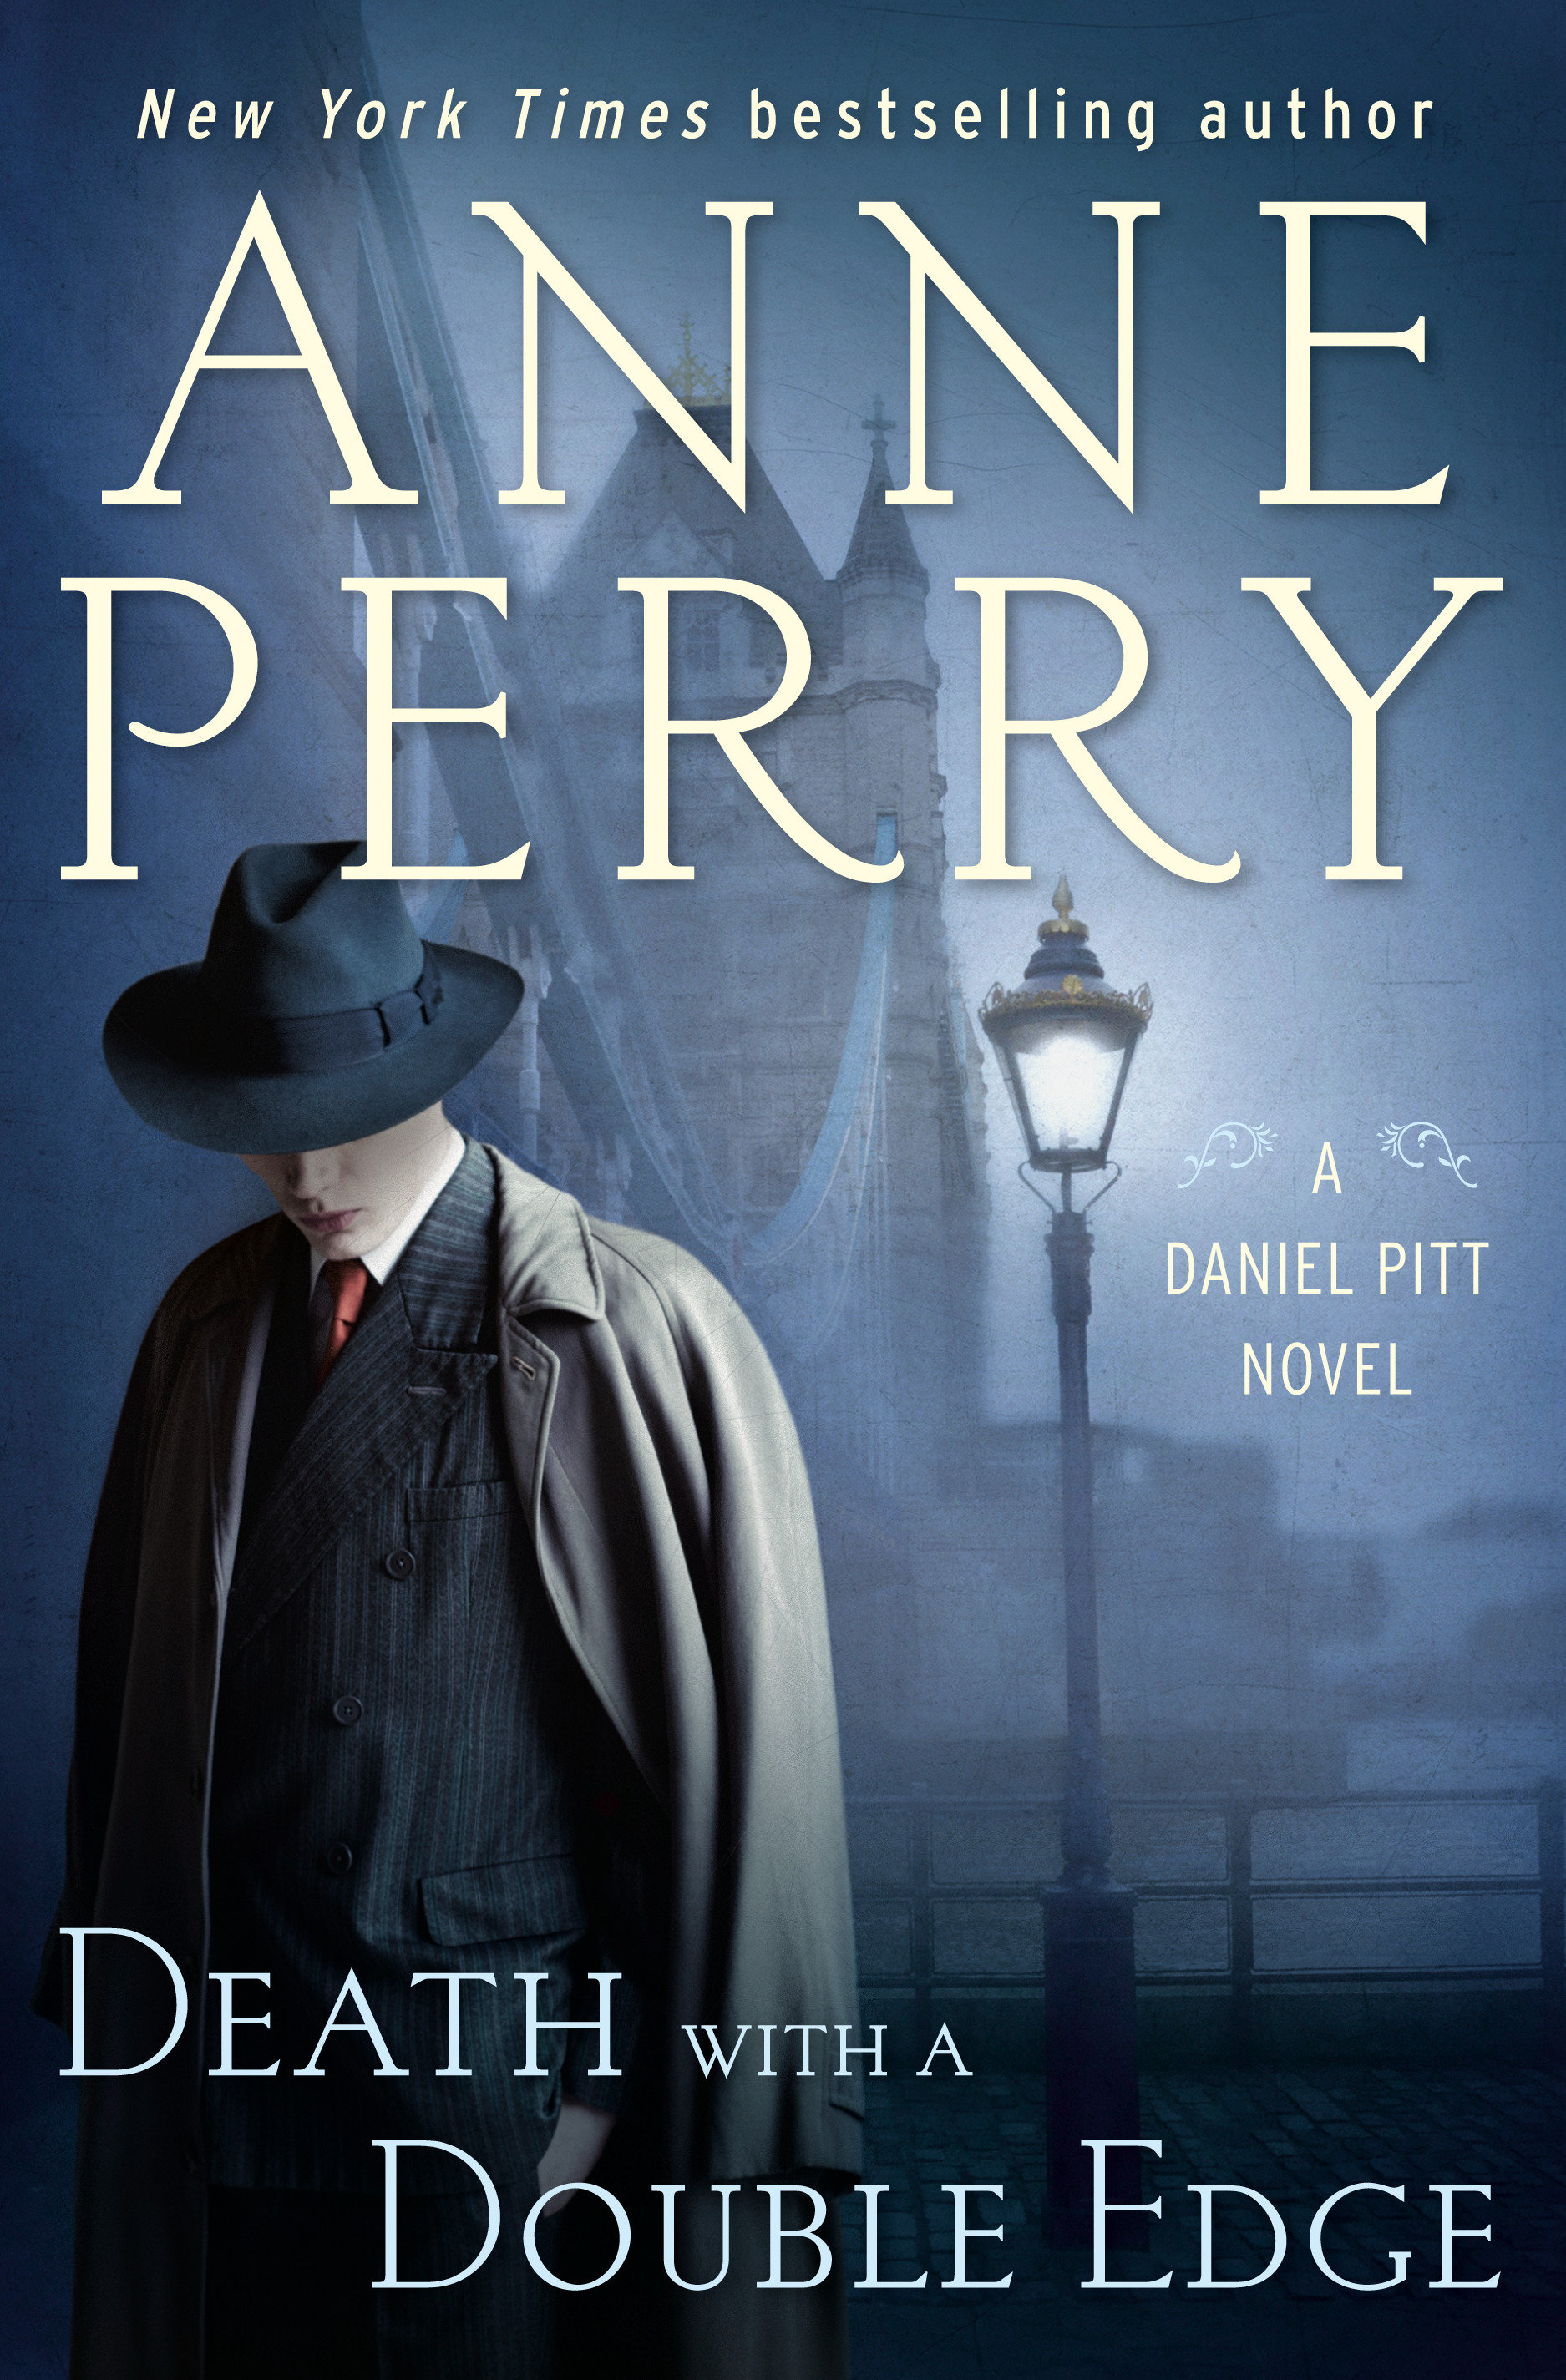 Death with a Double Edge A Daniel Pitt Novel